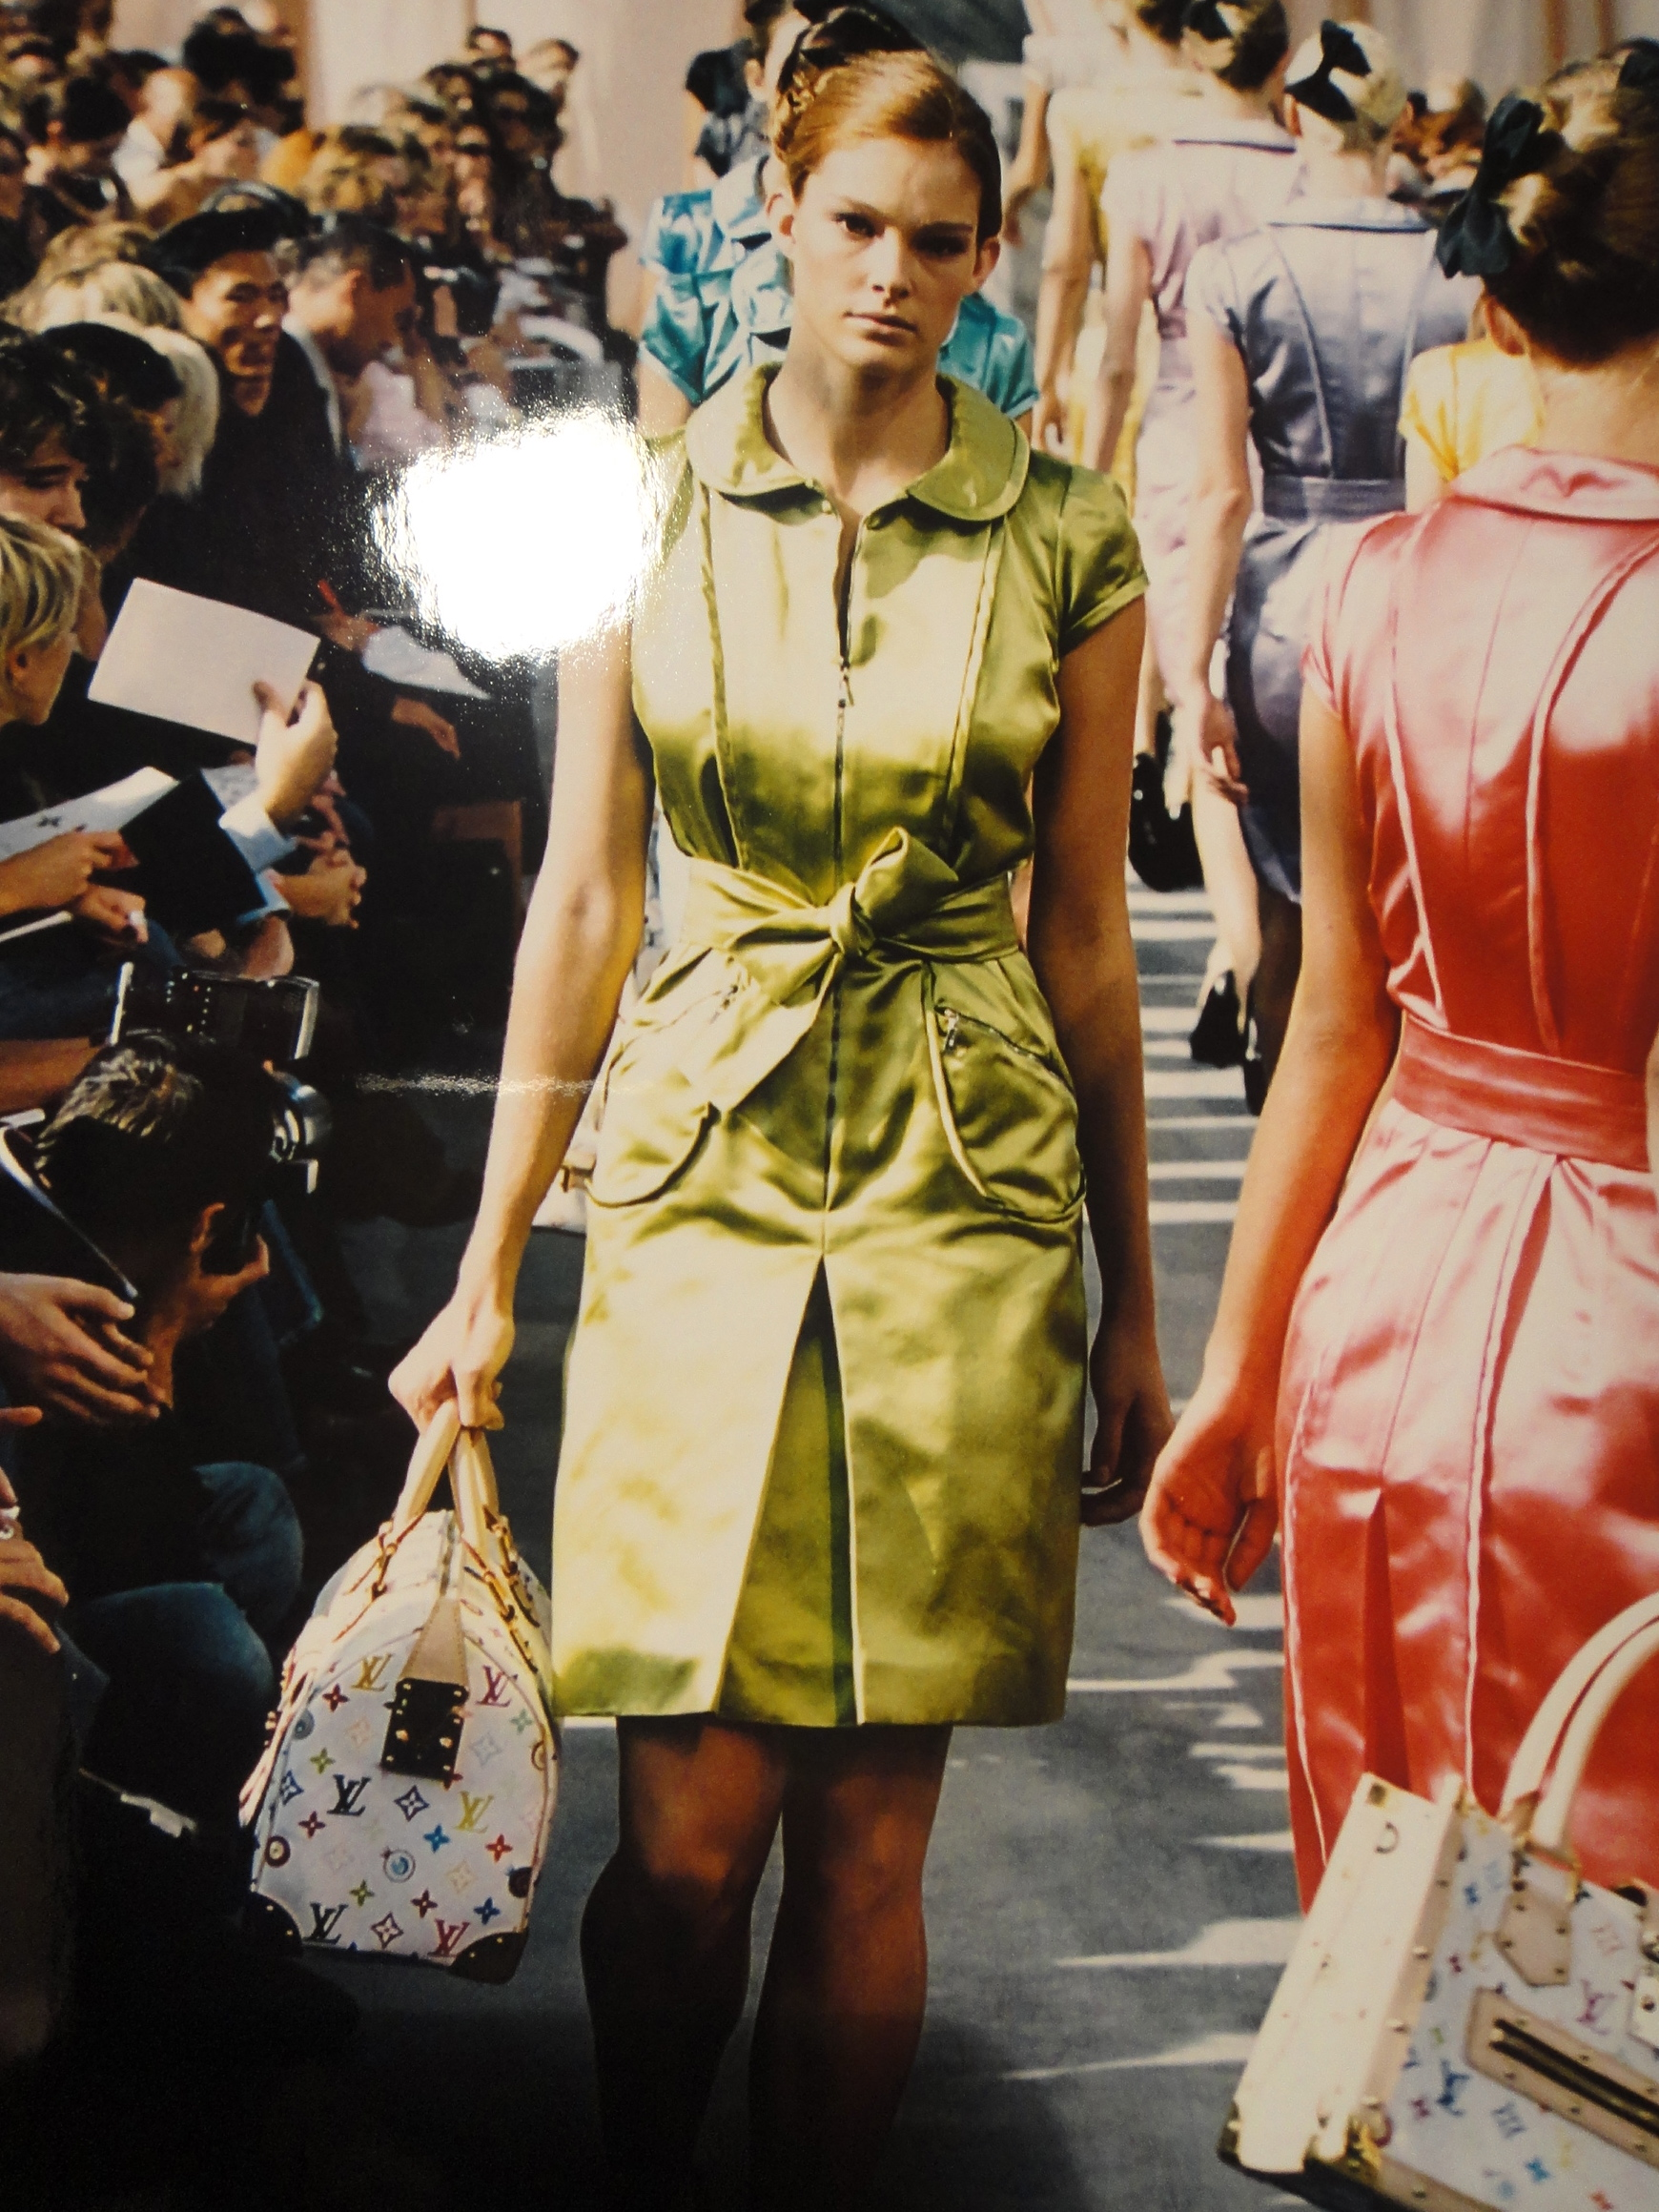 LV summer collection 2003